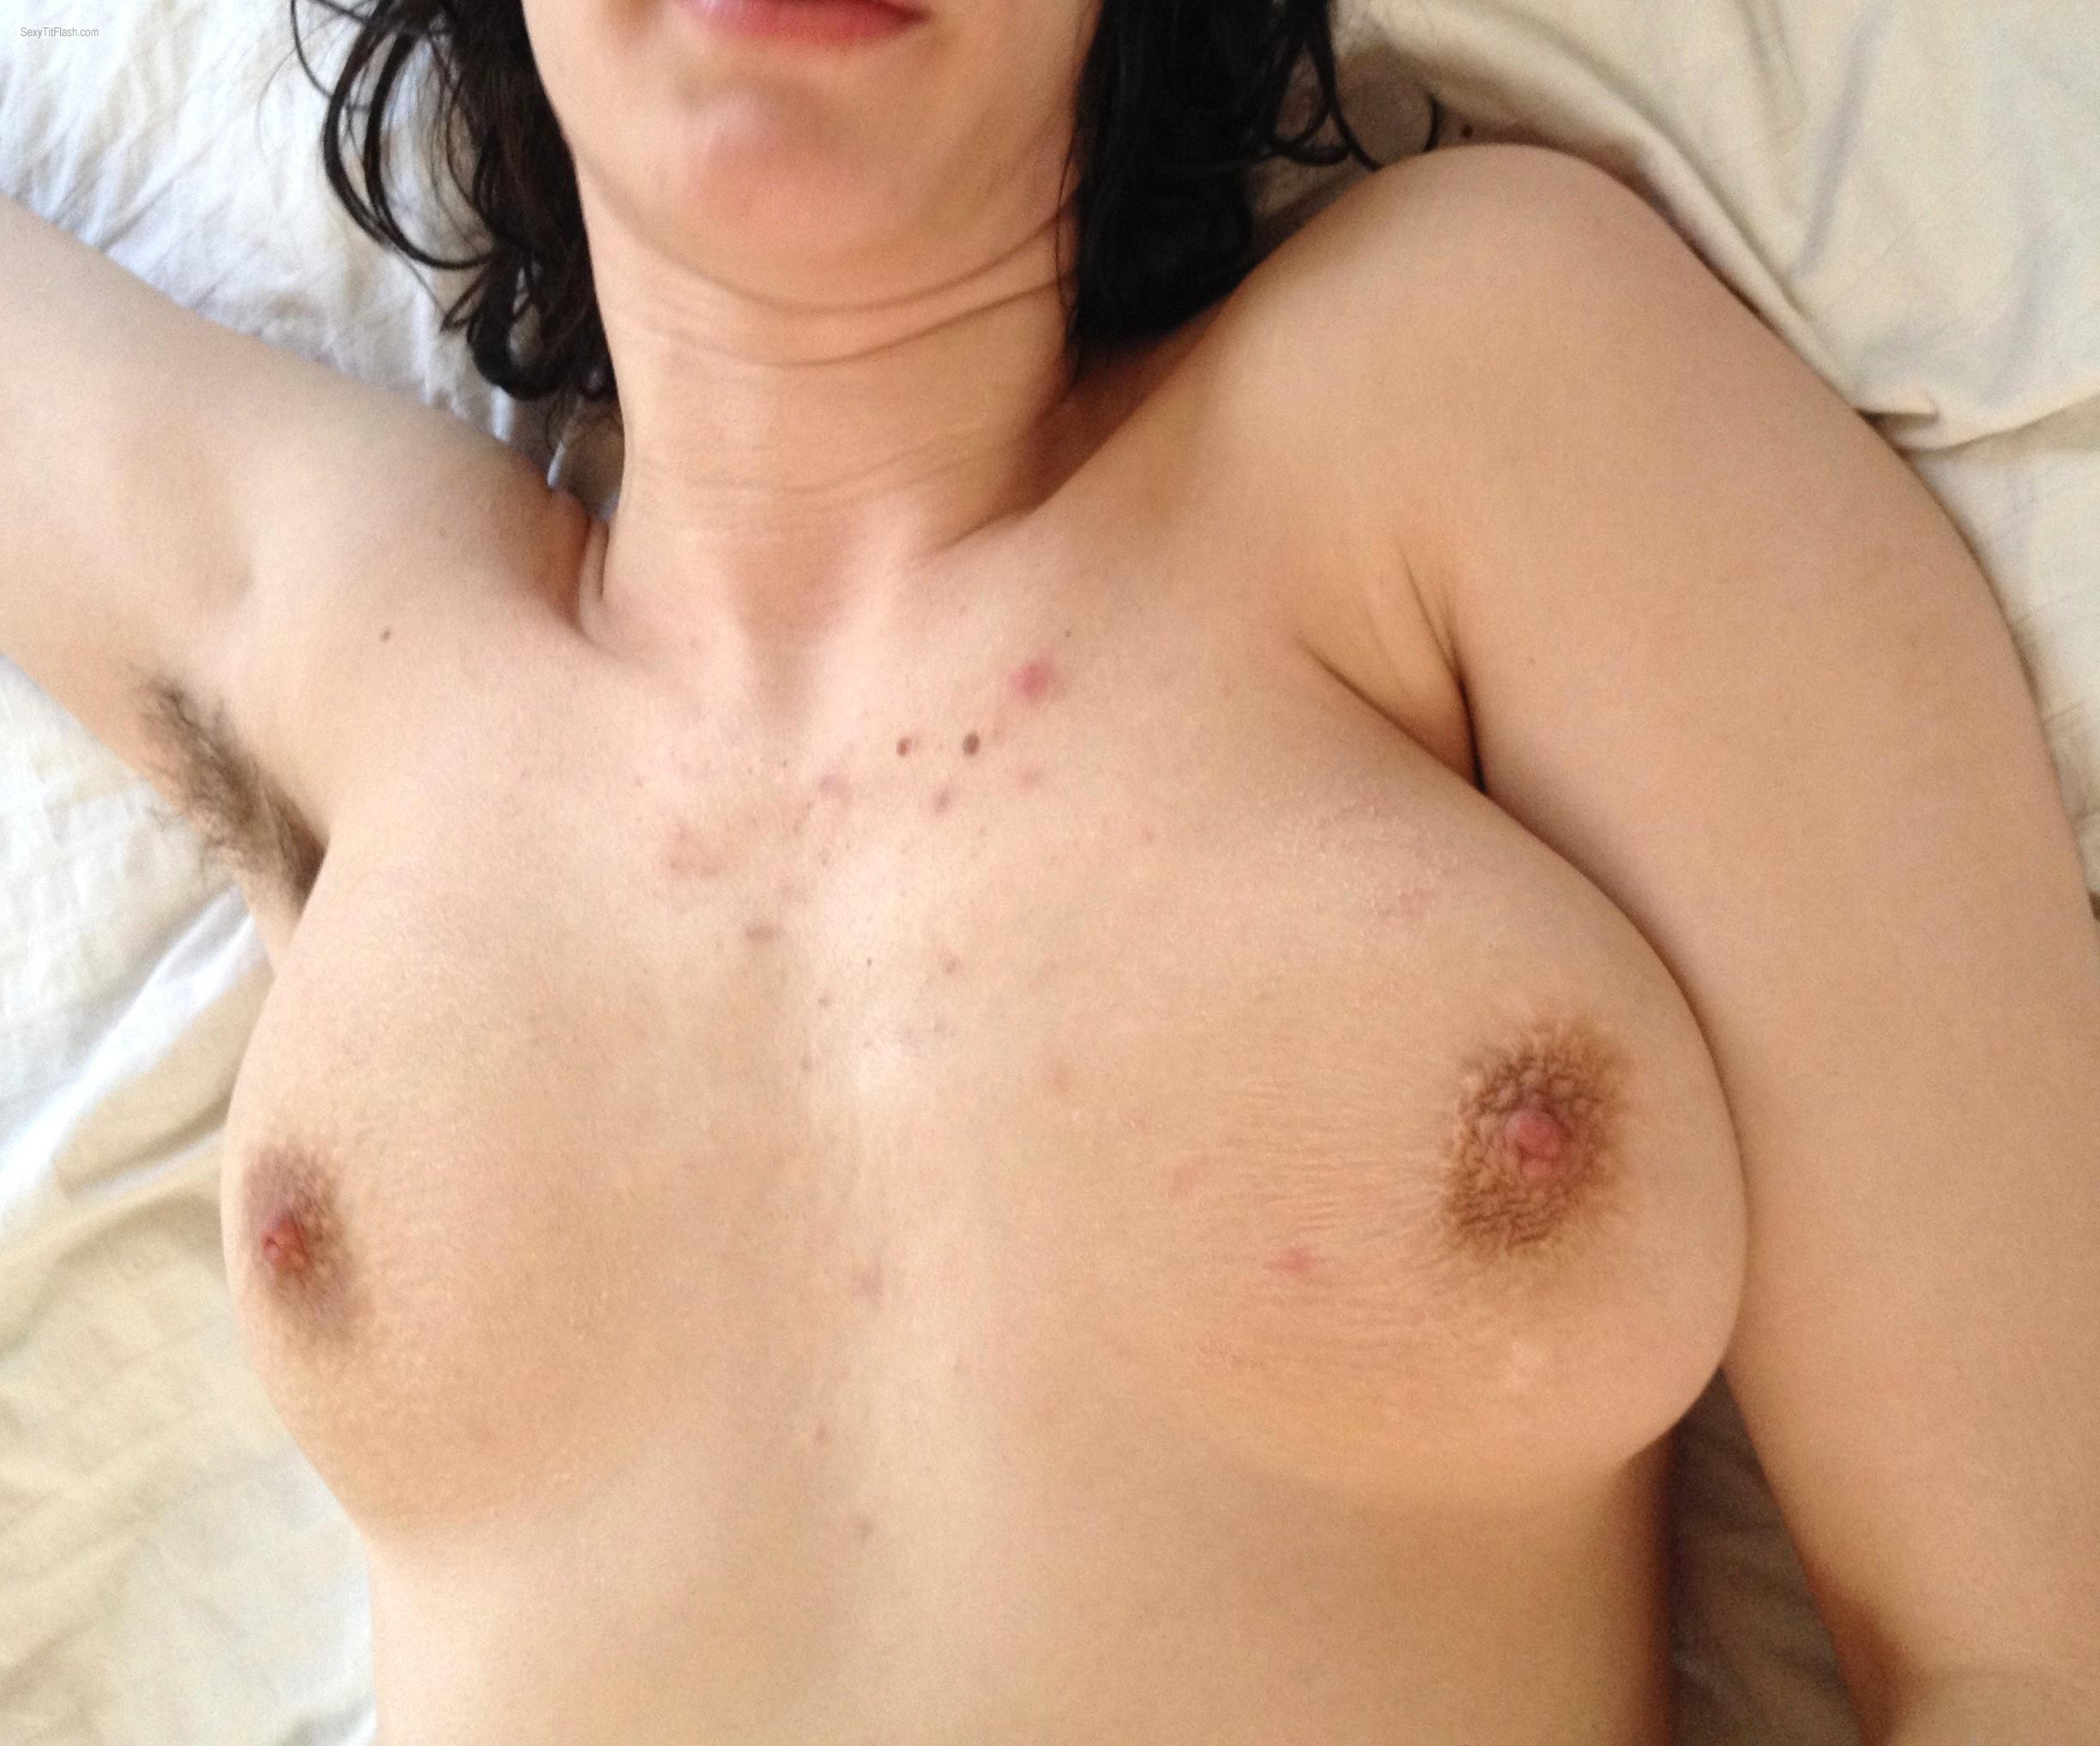 Tit Flash: My Medium Tits - Eve from United States